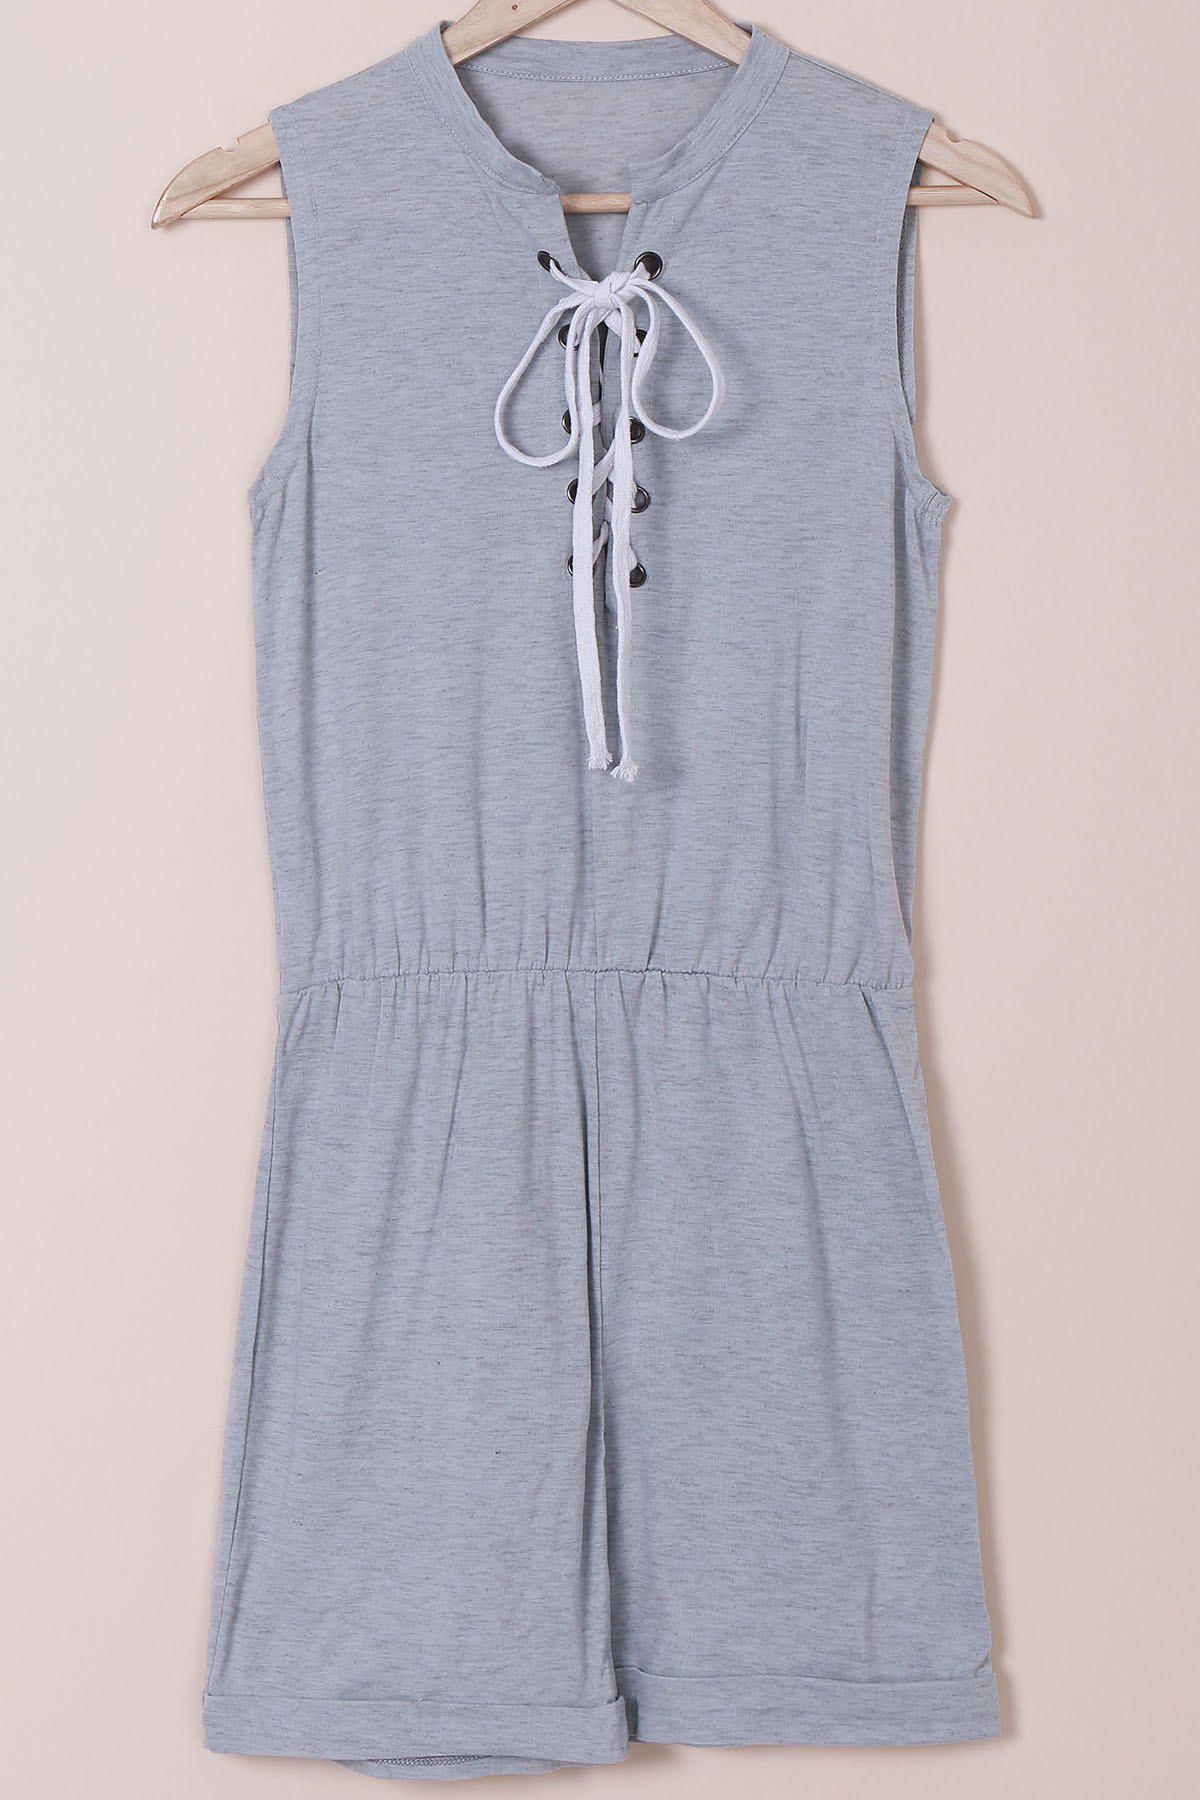 Store Casual Style Jewel Neck Sleeveless Gray Lace-Up Women's Romper